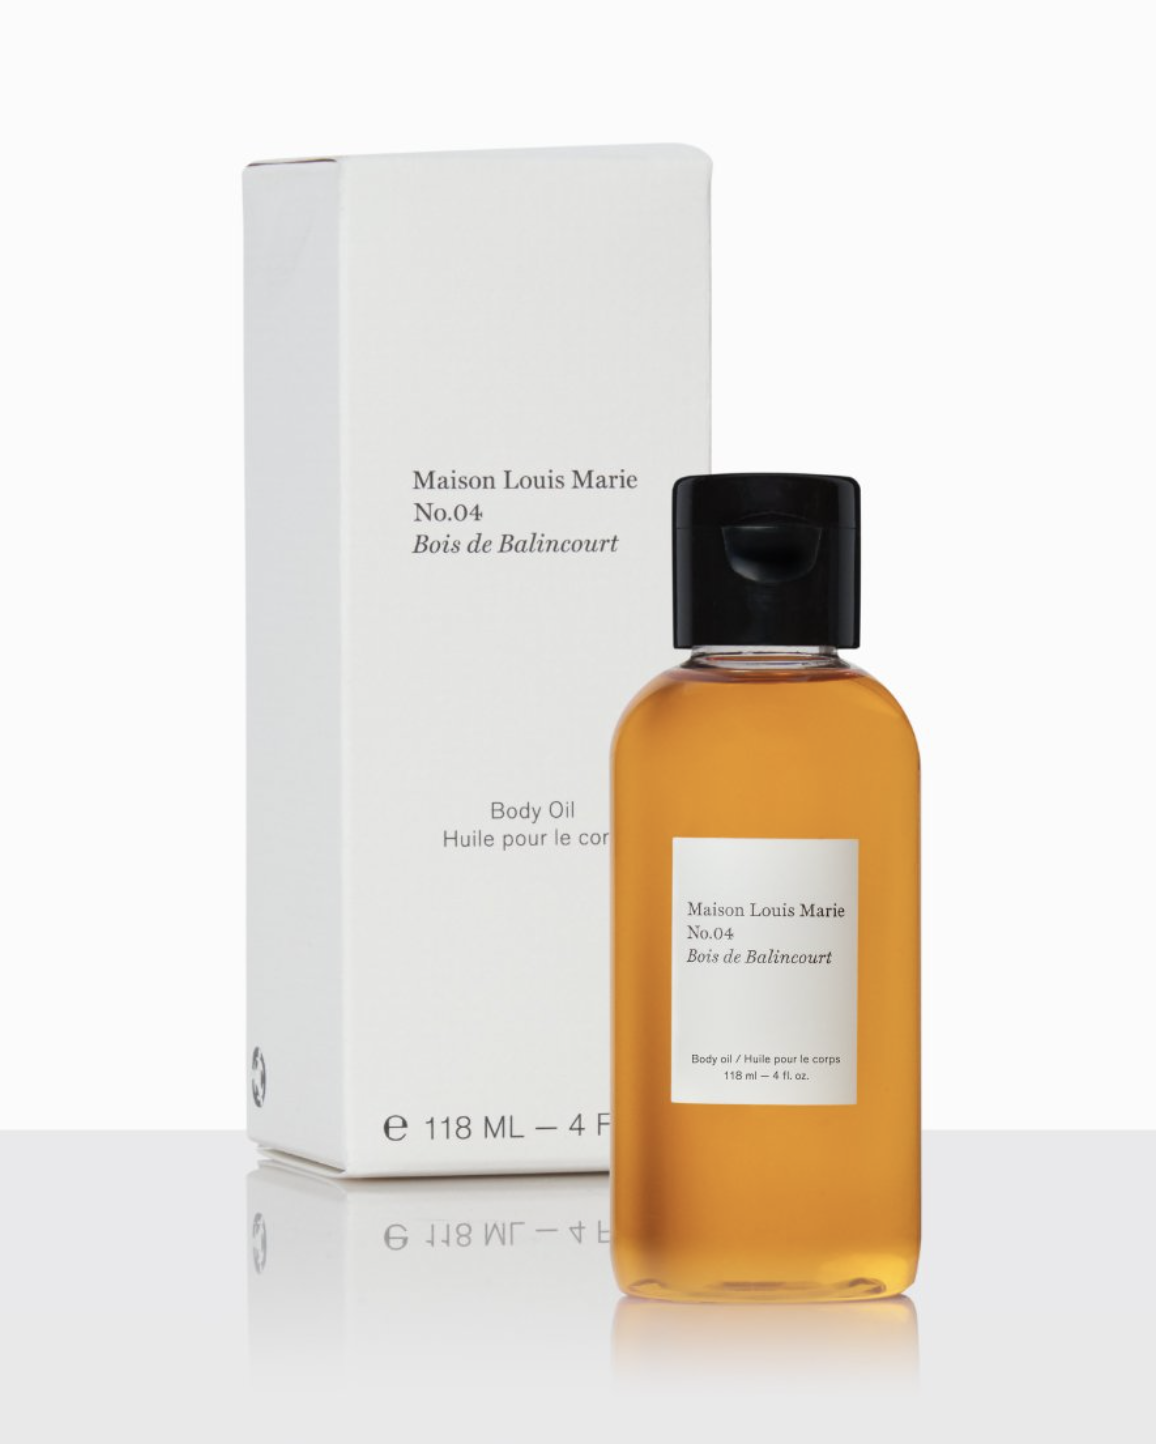 Maison Louis Marie Body oil